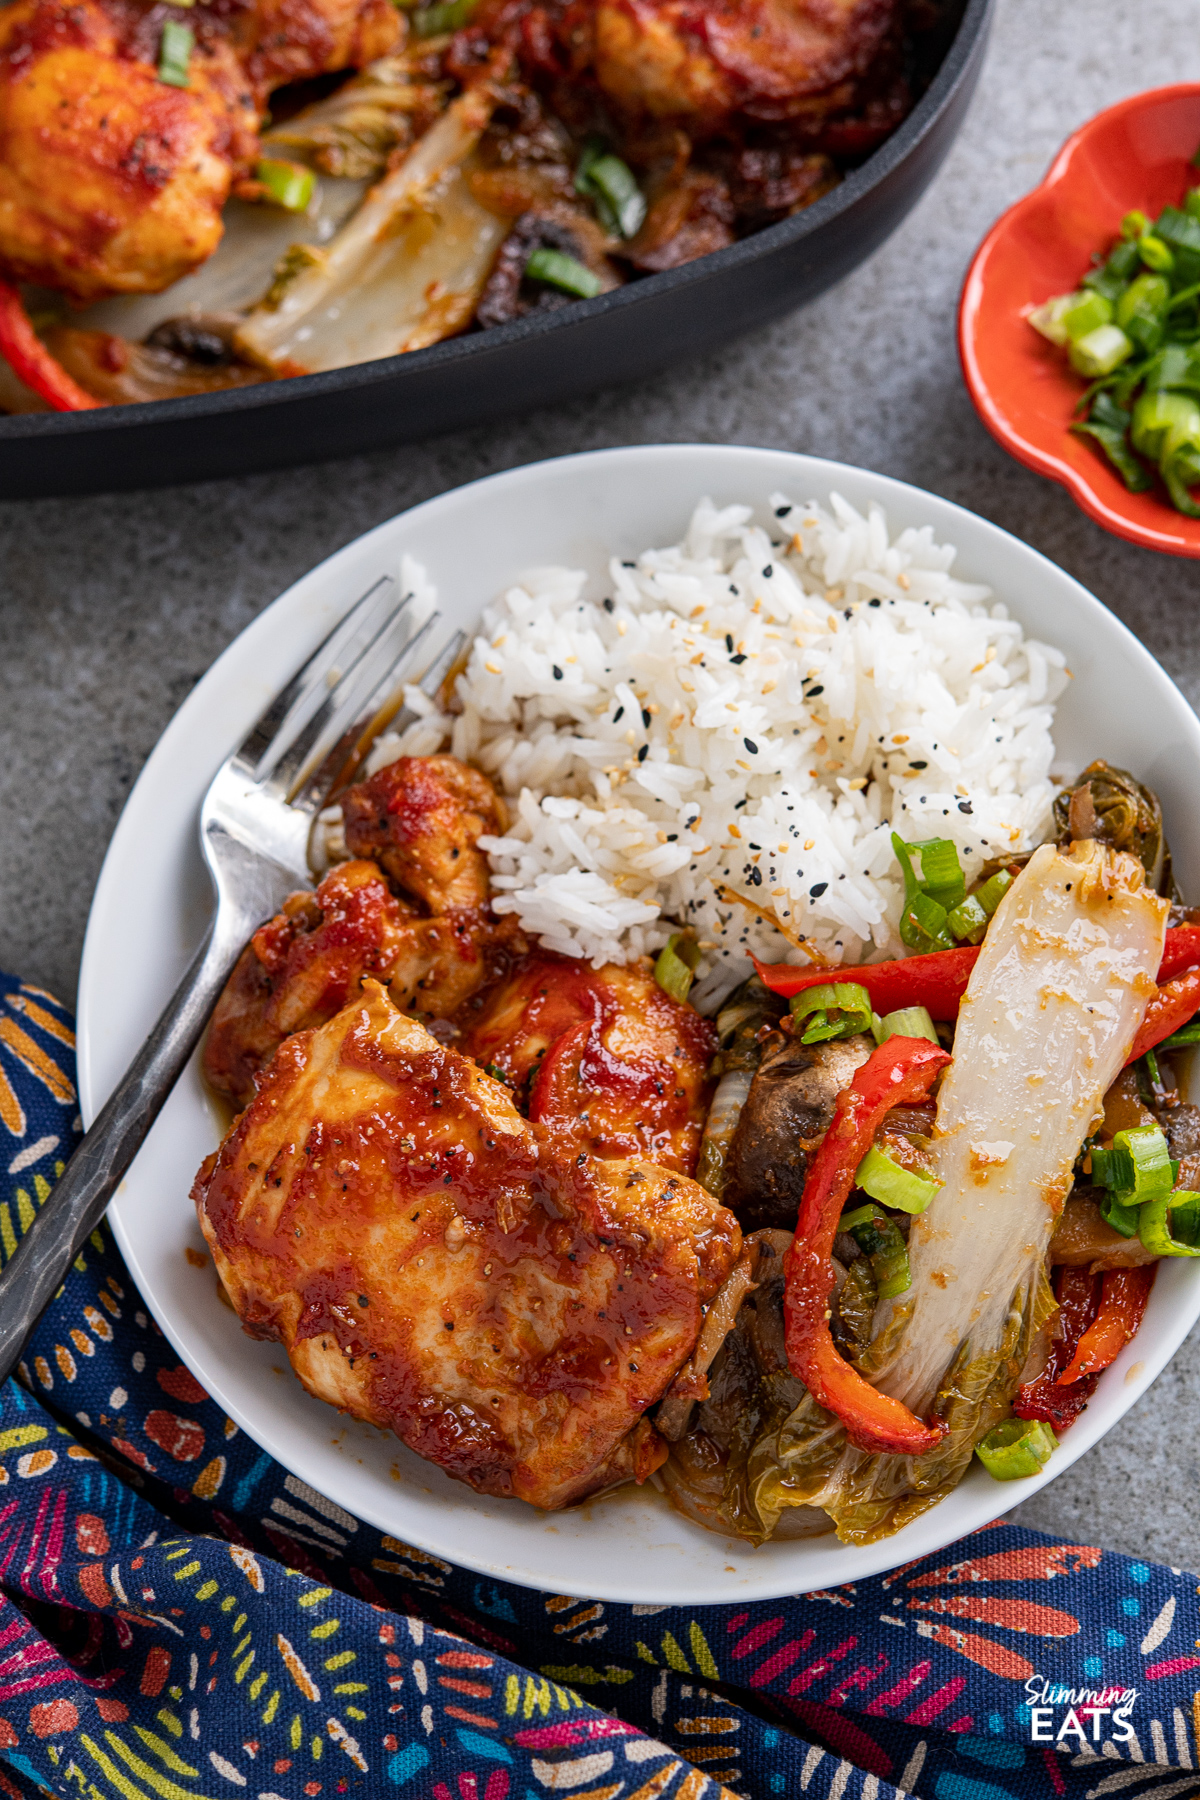 white bowl with Sriracha Peach Chicken Bake and jasmine rice with mixed sesame seeds and vegetables, skillet and pinch bowl visible in back ground.